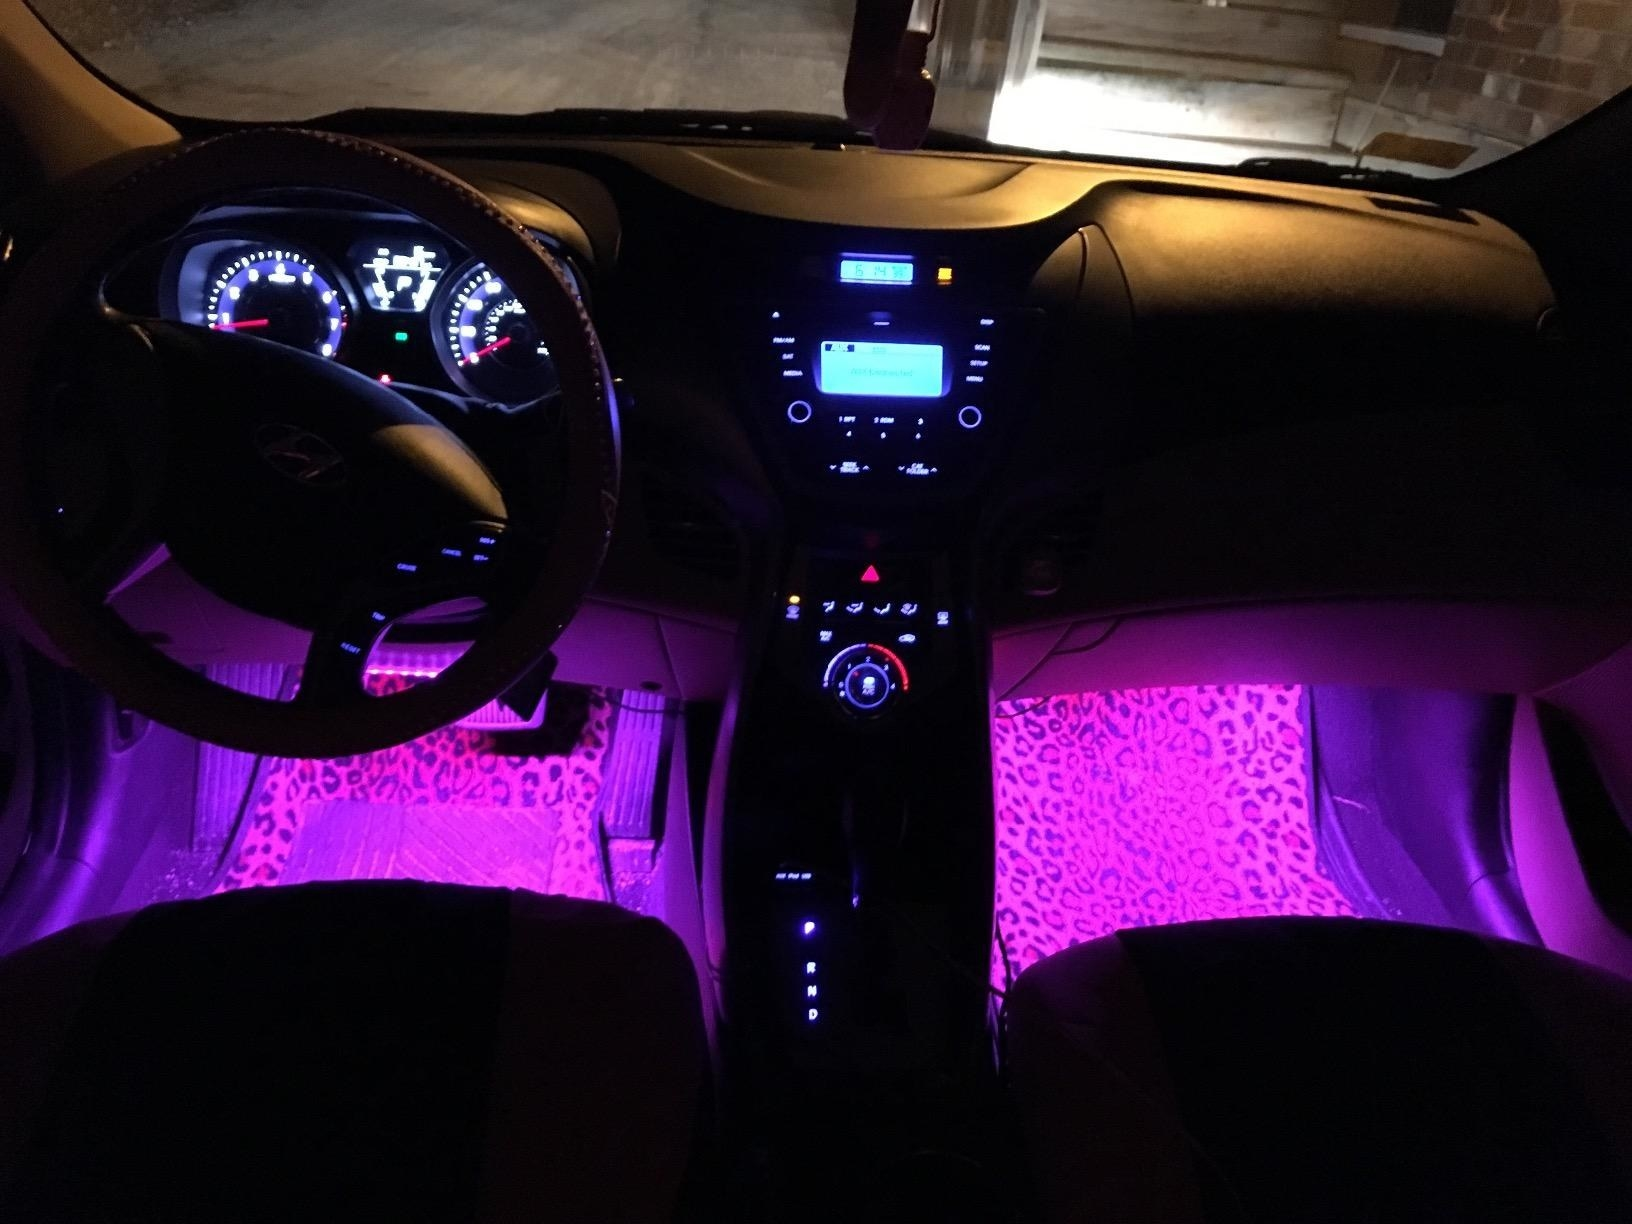 Reviewer photo of their car with the pink lights under the dashboard